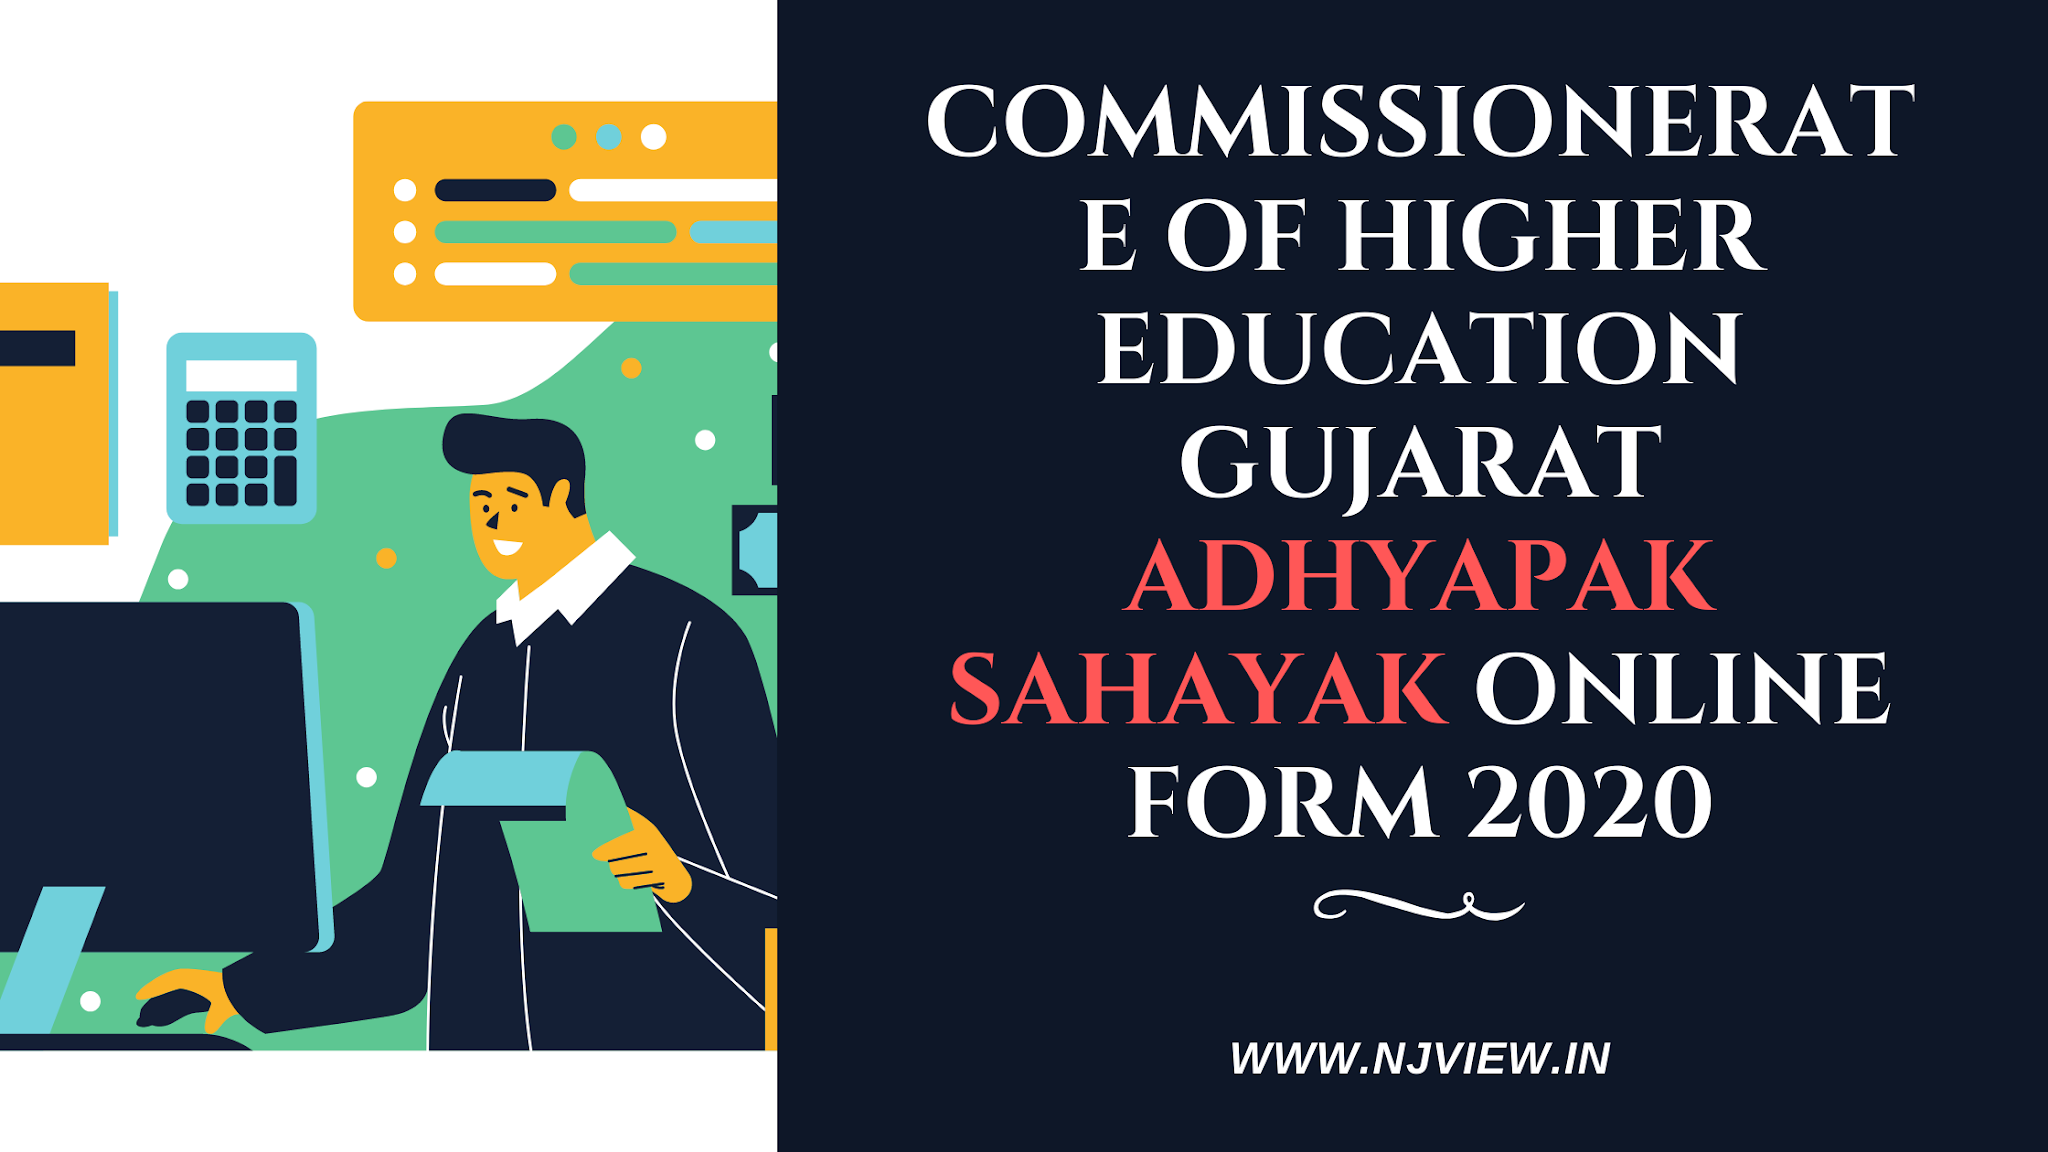 Commissionerate of Higher Education Gujarat Adhyapak Sahayak Online Form 2020